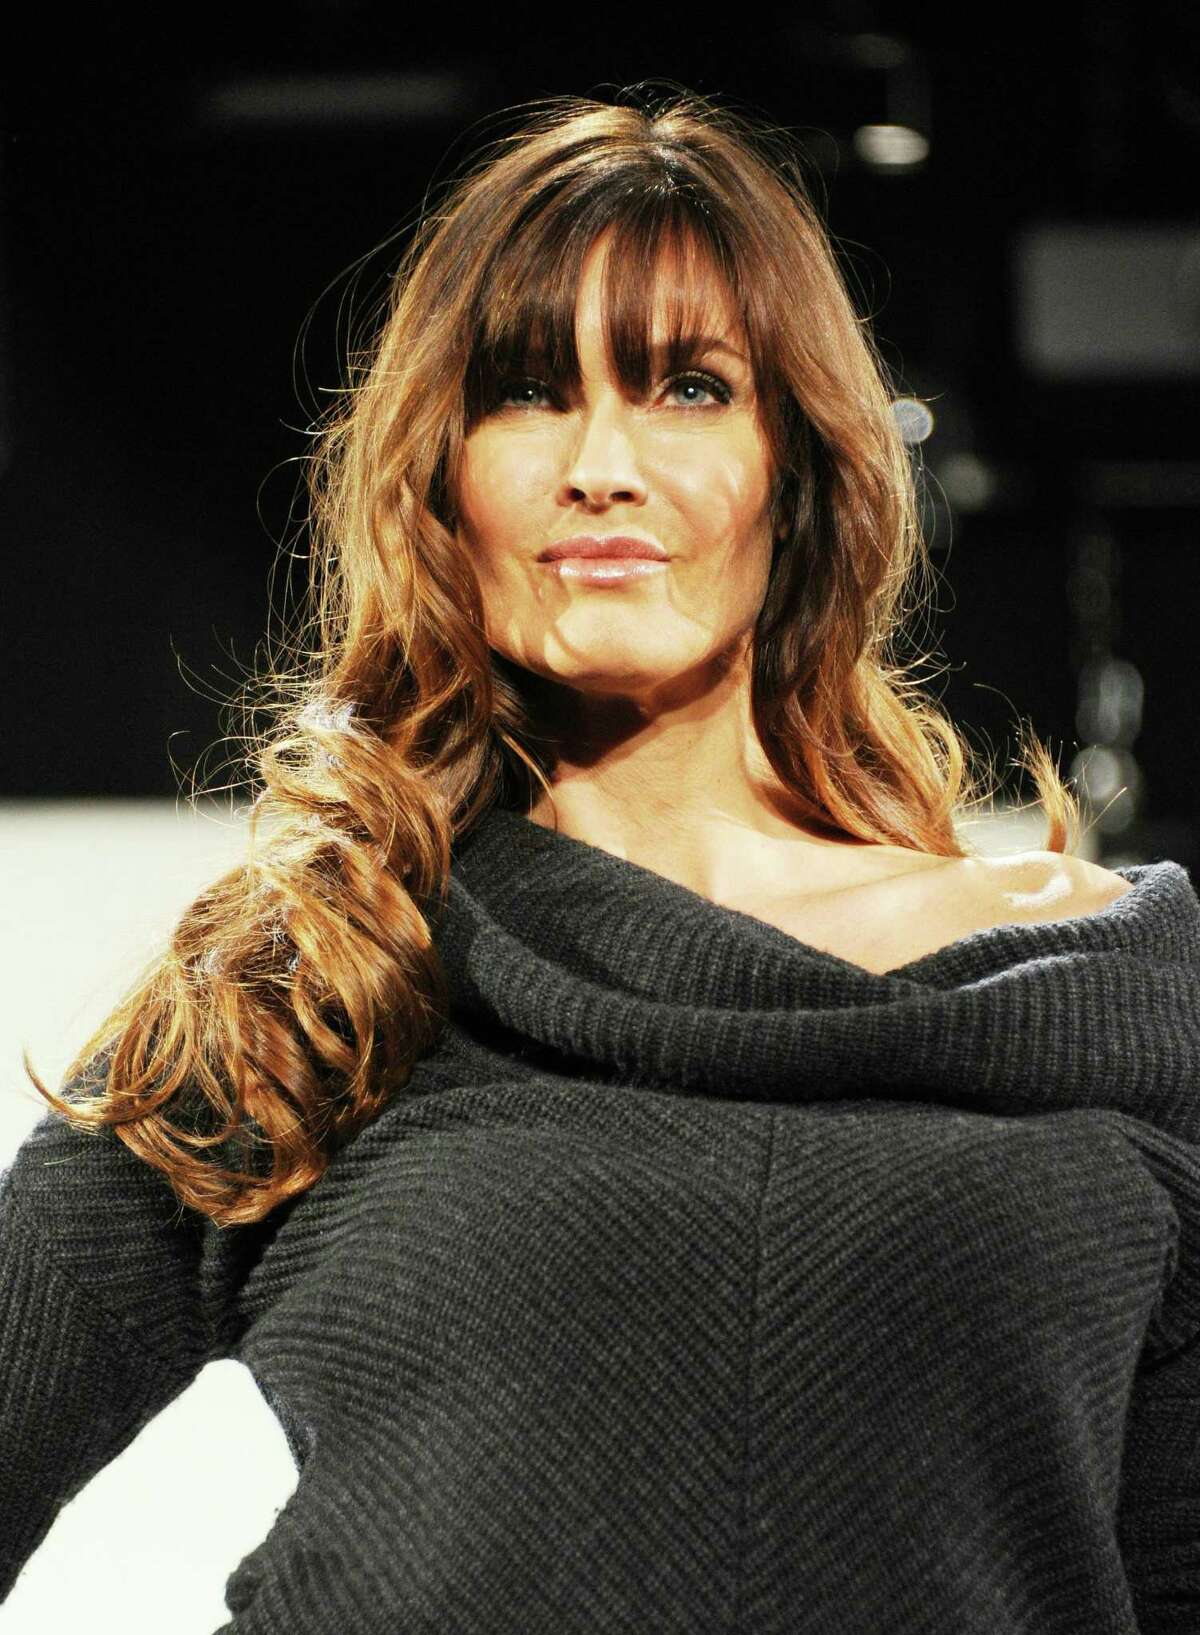 NEW YORK, NY - FEBRUARY 16: Model Carol Alt walks the runway during the Vittadini Fall 2011 presentation during Mercedes-Benz Fashion Week at The Box at Lincoln Center on February 16, 2011 in New York City. (Photo by Mike Coppola/Getty Images For IMG)